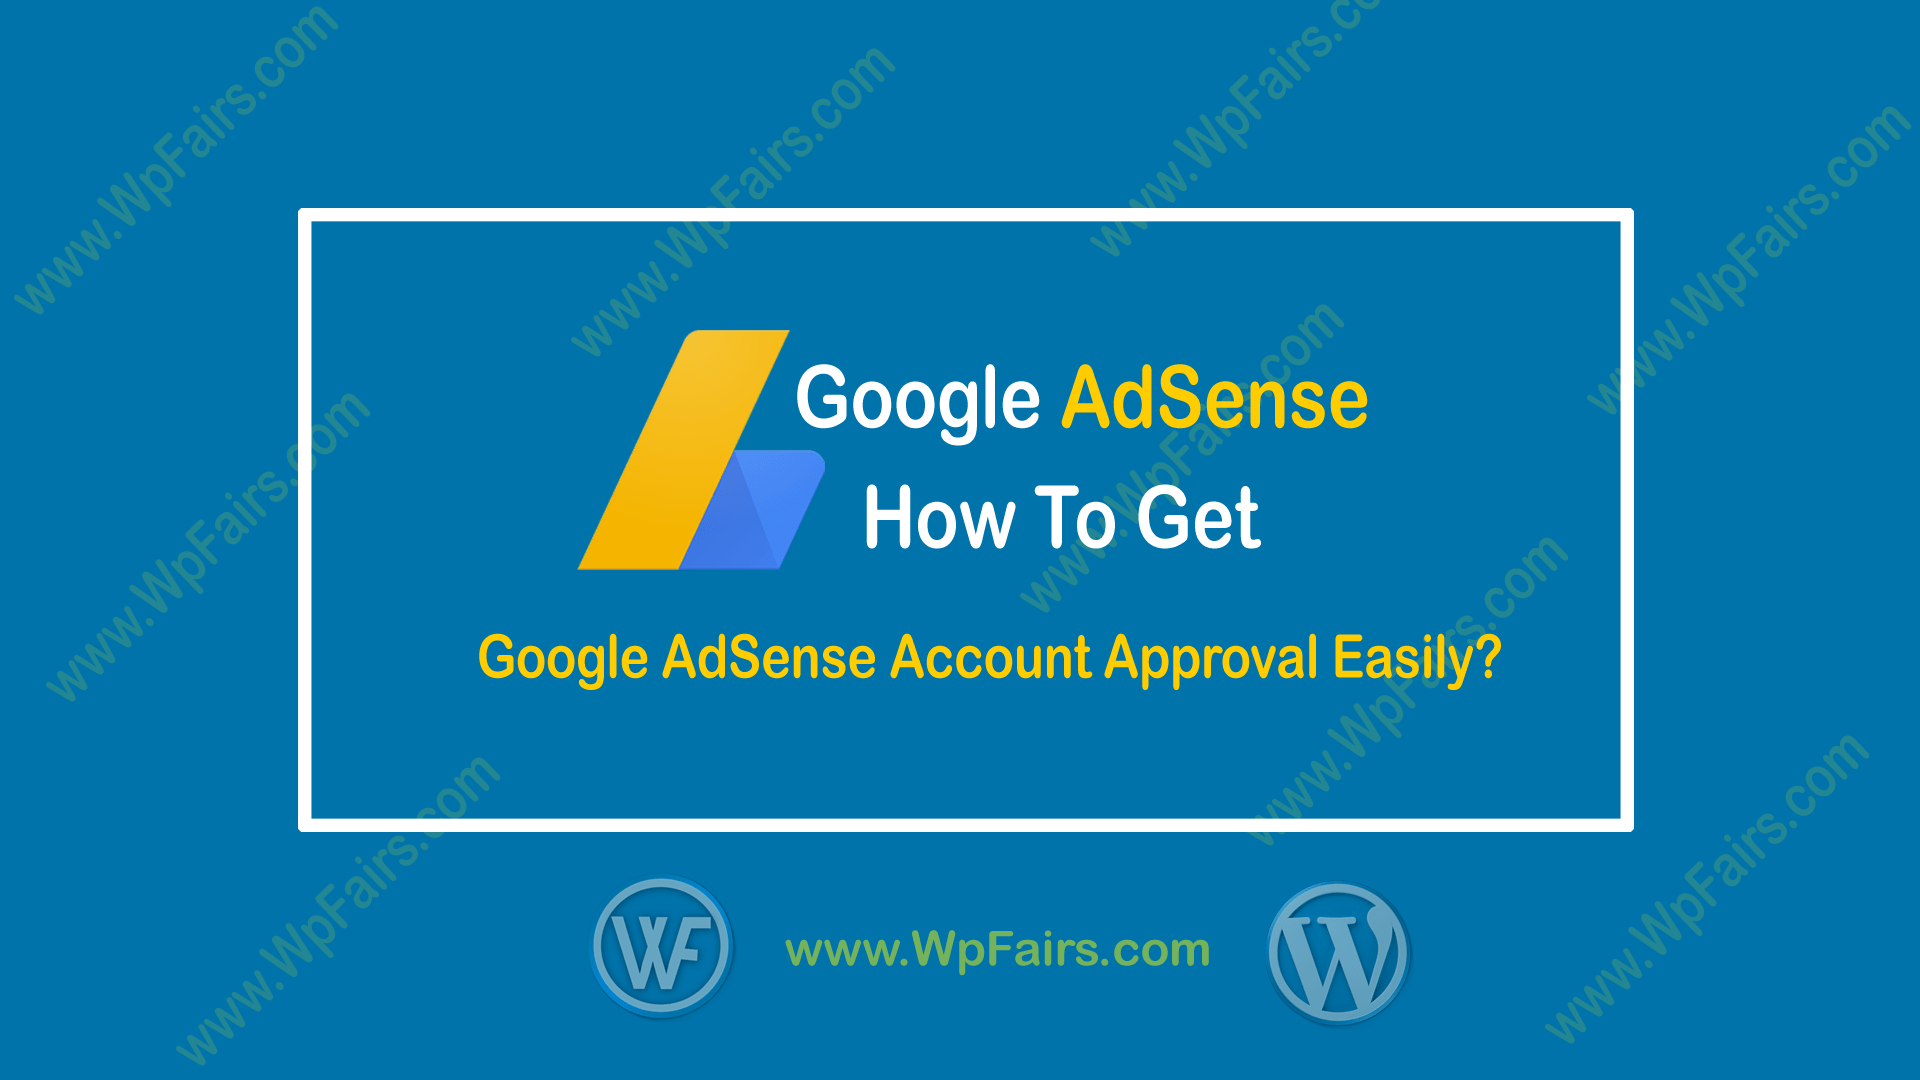 How To Get Google AdSense Account Approval Easily - WpFairs